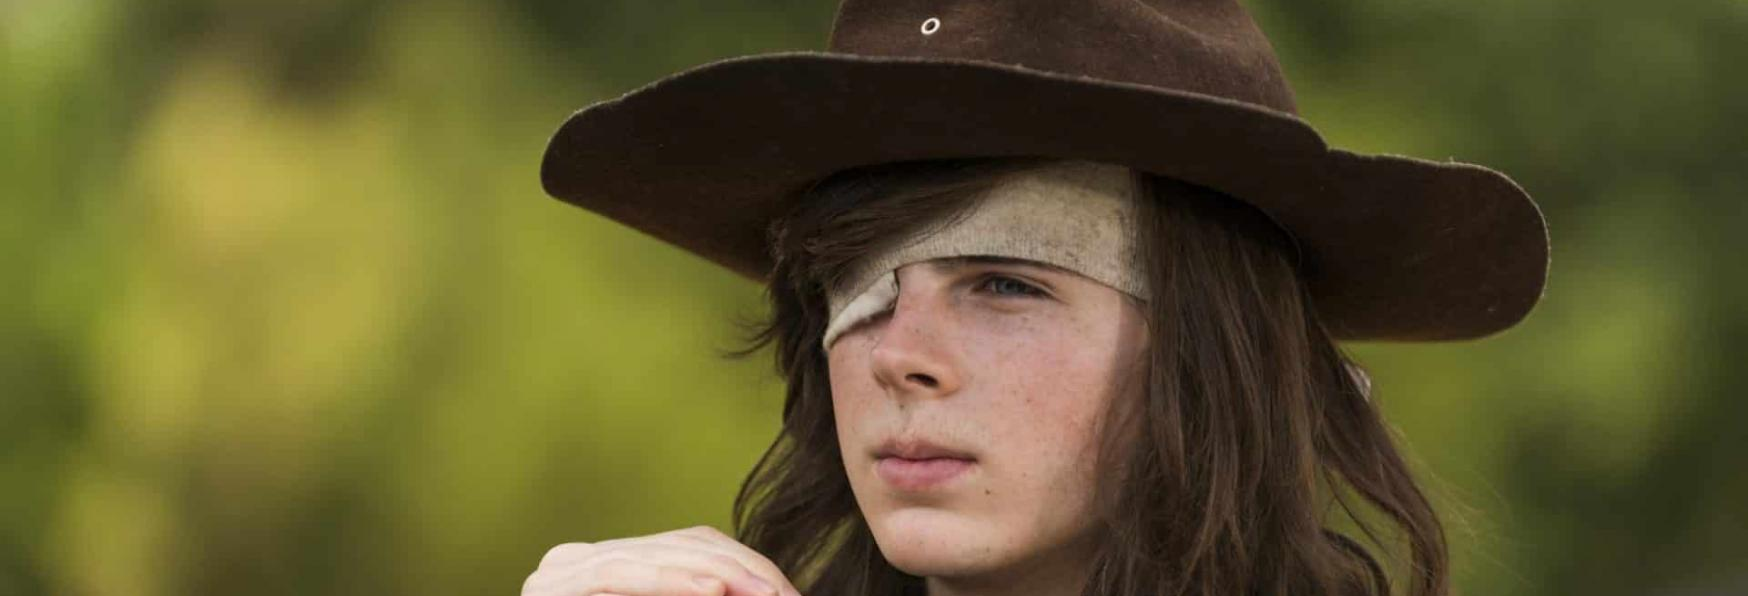 """The Walking Dead: Rivedremo Carl Grimes? Chandler Riggs dice: """"Vedremo""""."""